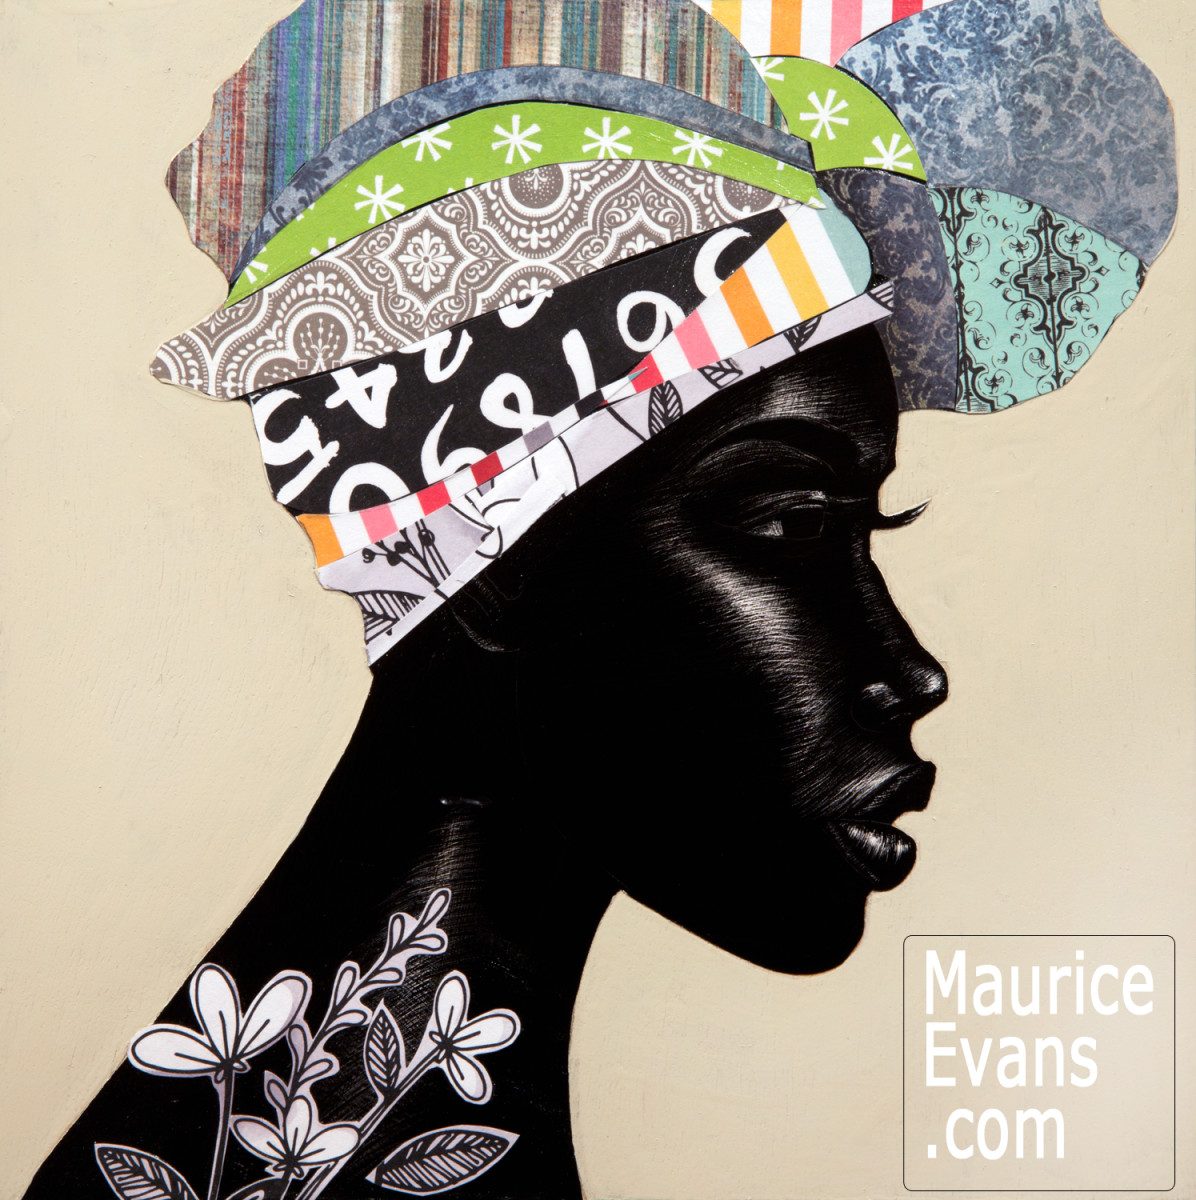 Maurice Evans Celebrates Black Women's Hair in His Series